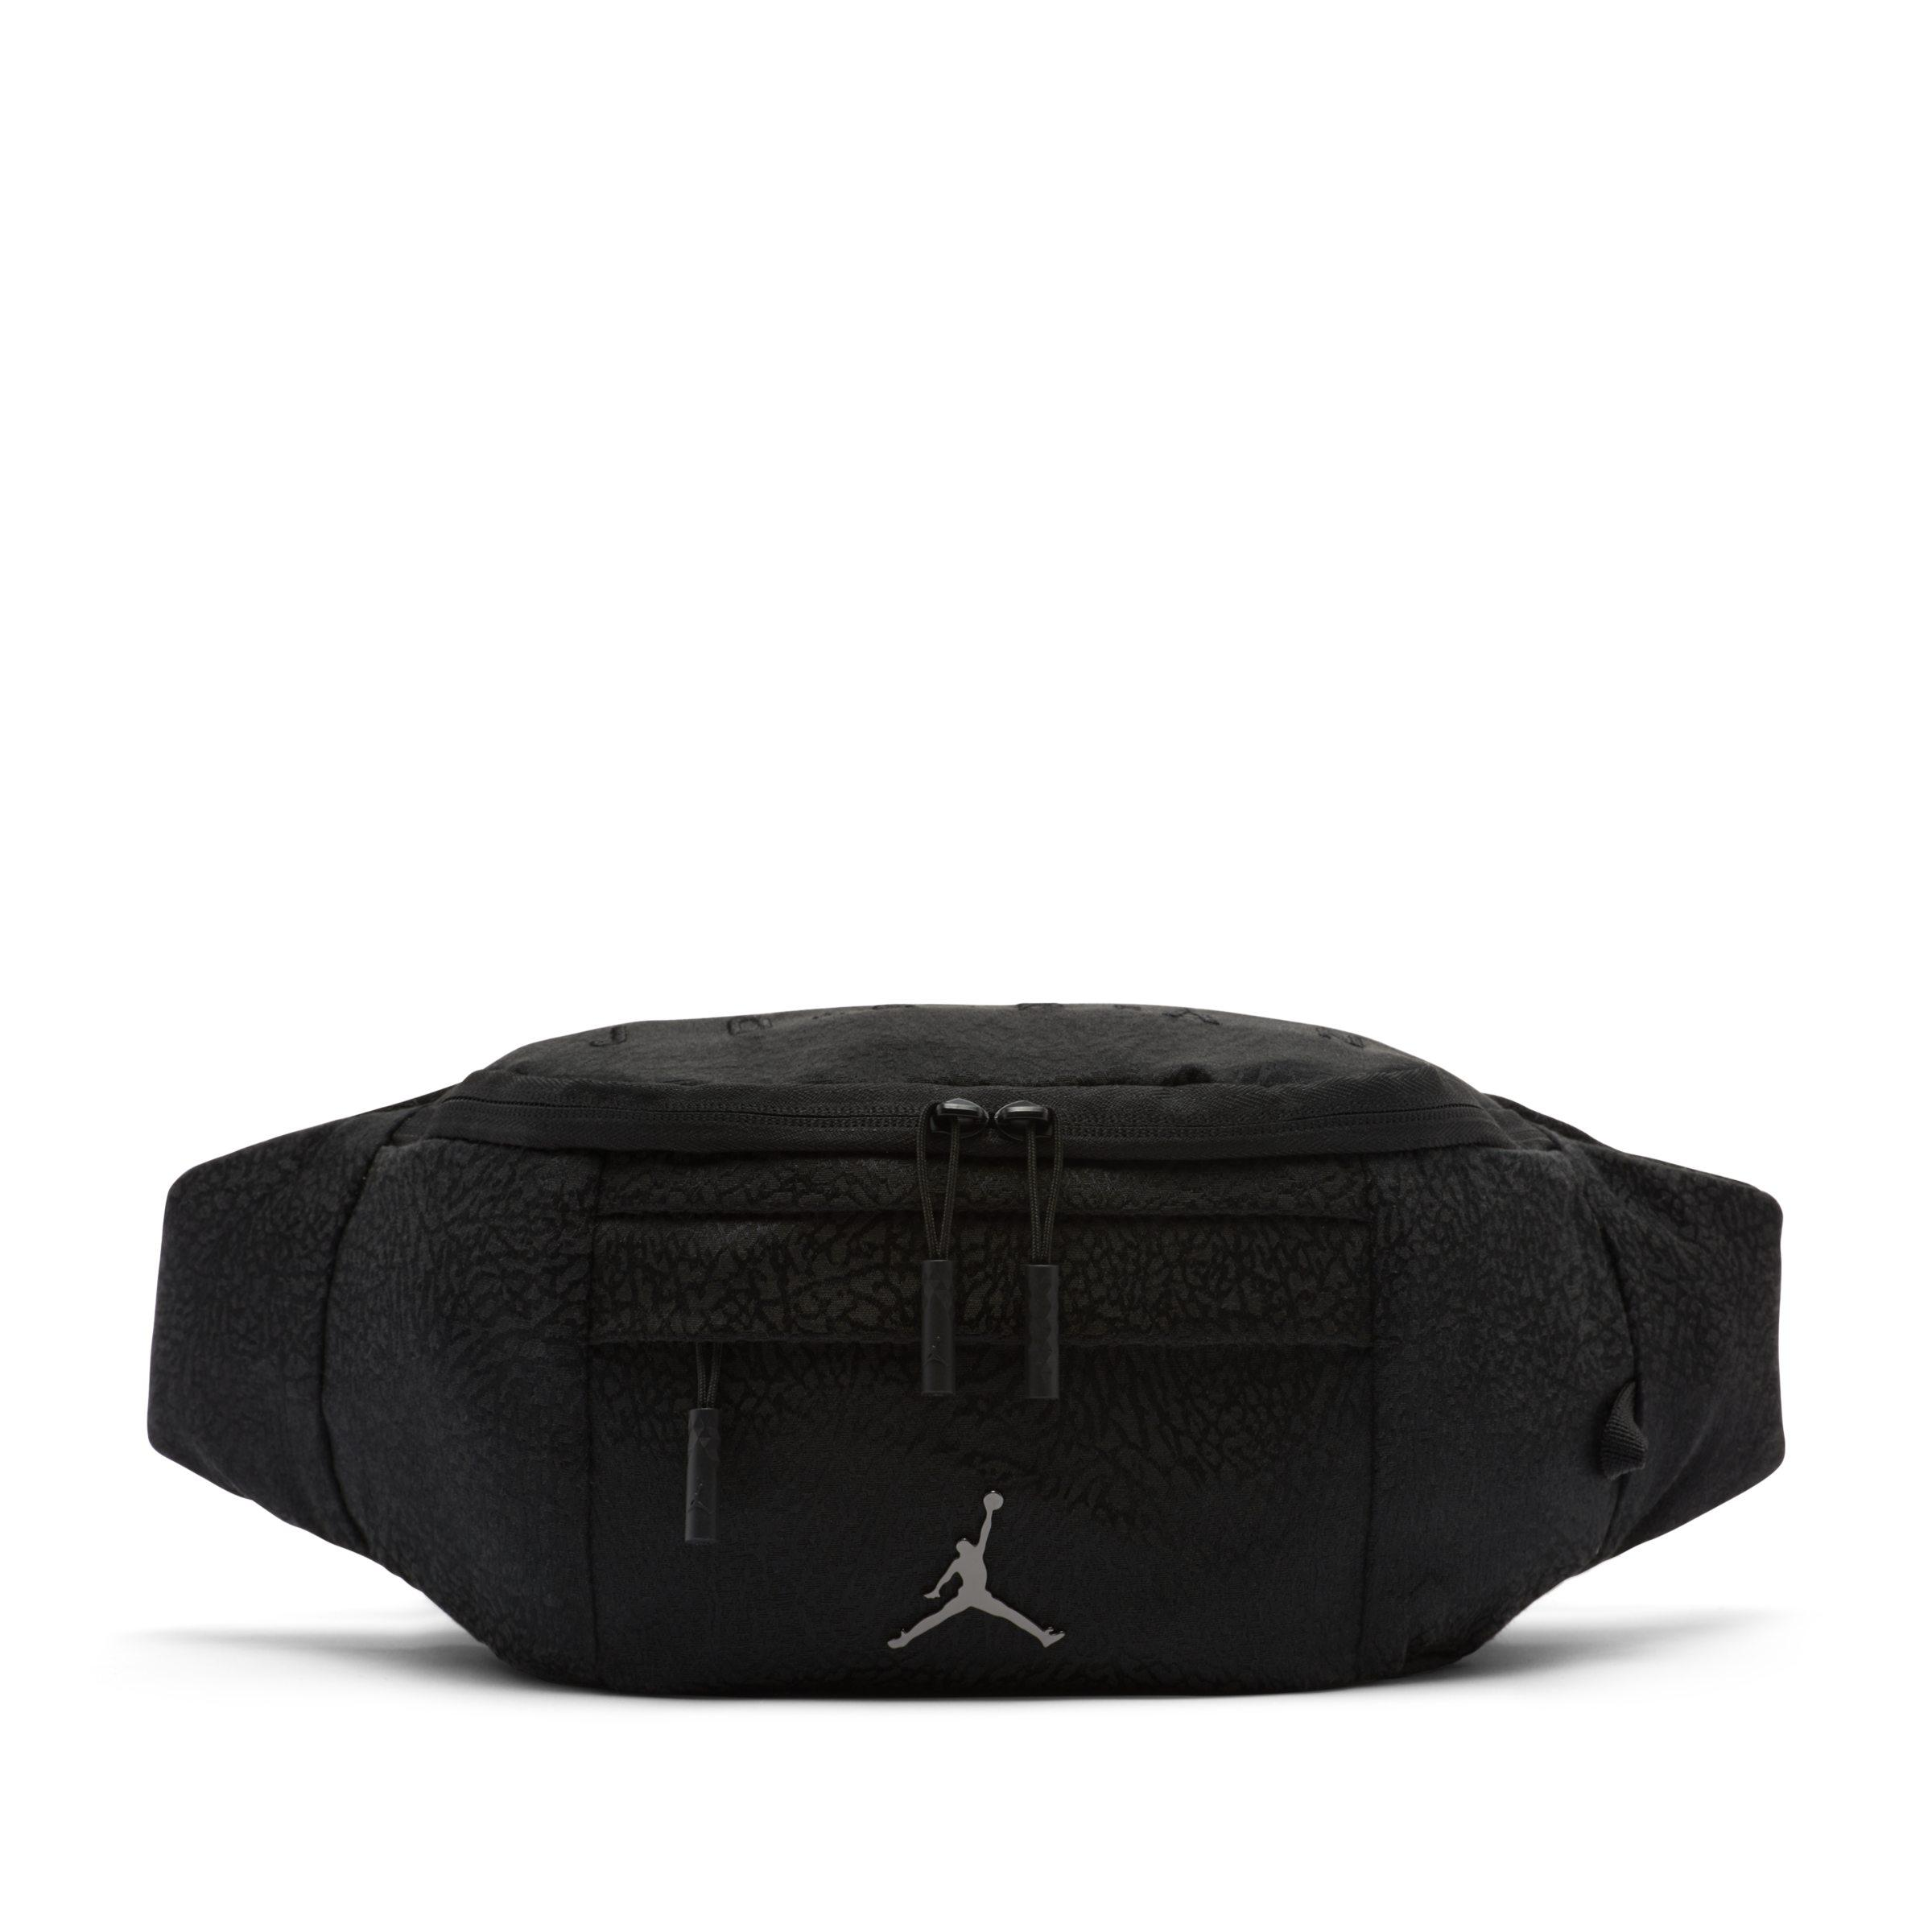 Nike Jordan Jumpman Air Crossbody Bag in Black - Lyst 497823cf71292